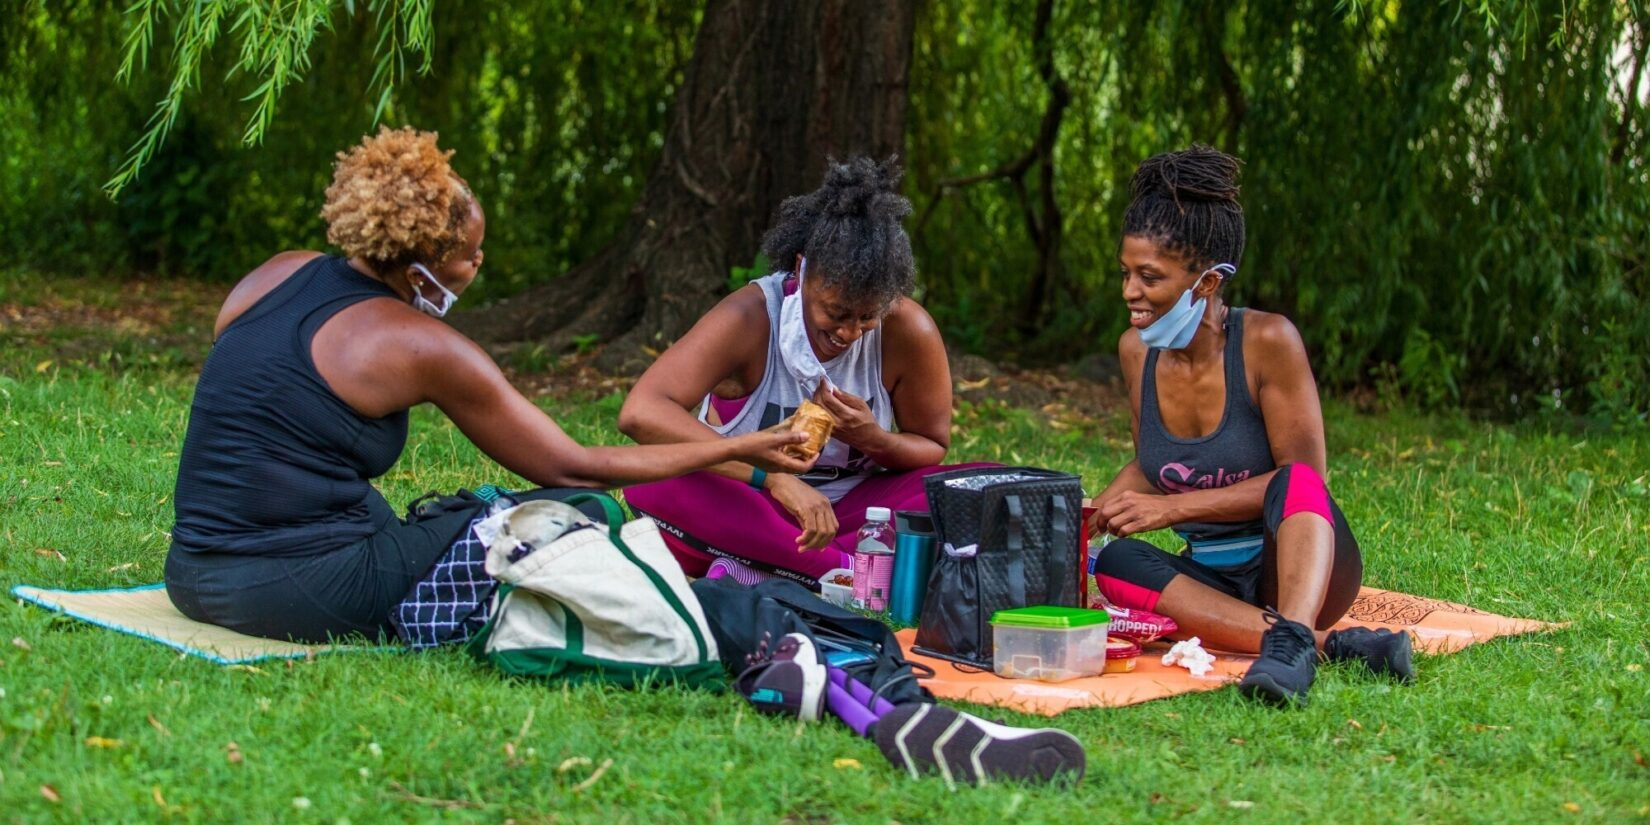 Three women enjoying a picnic on blankets at the Meer.